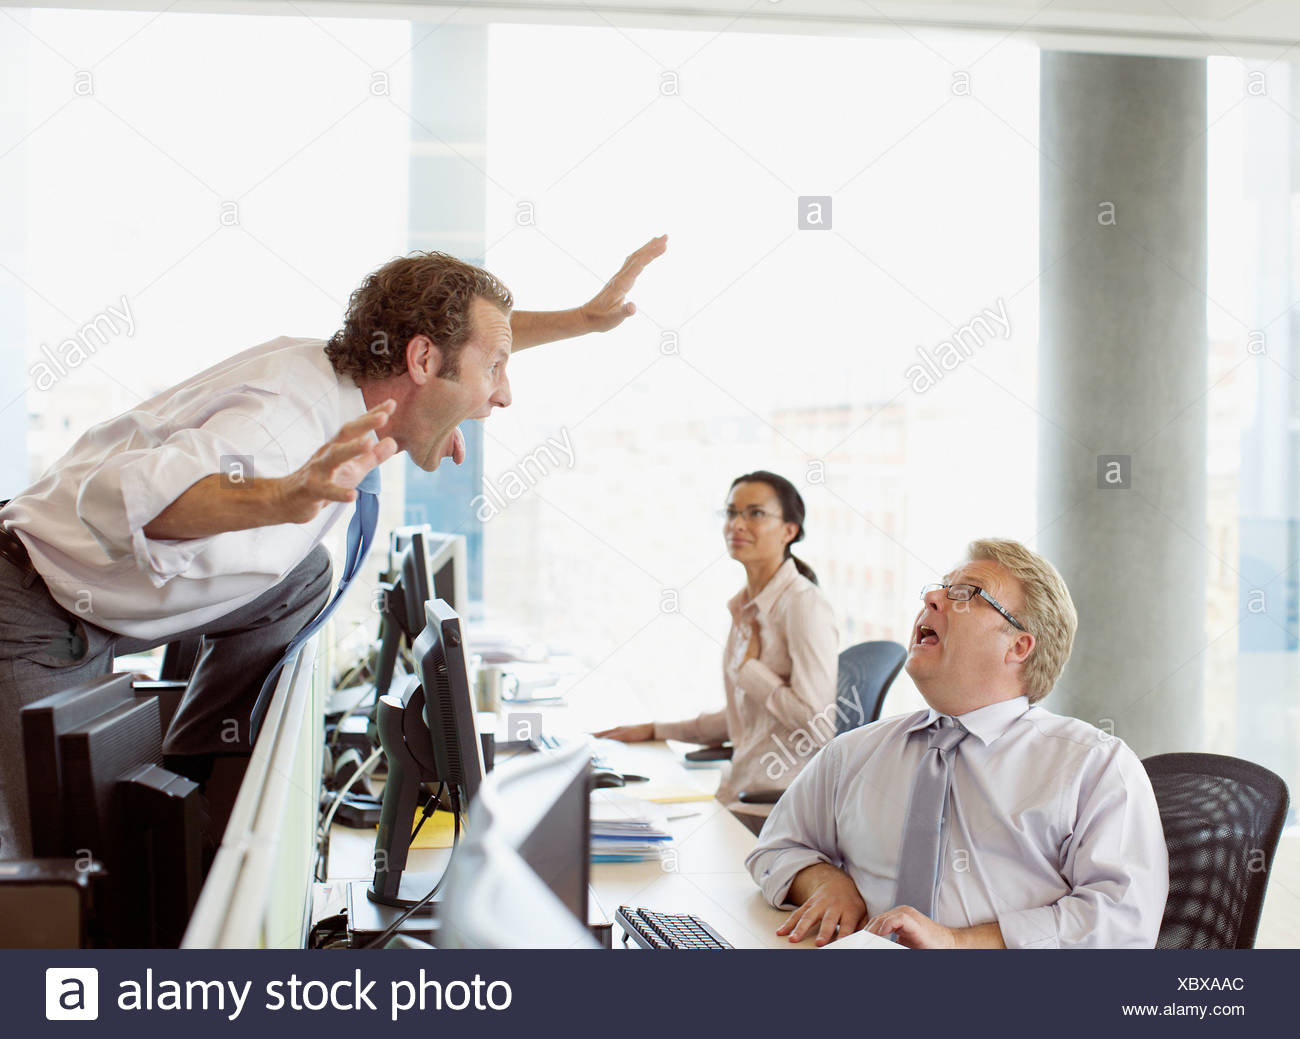 Businessman scaring co-worker in office - Stock Image